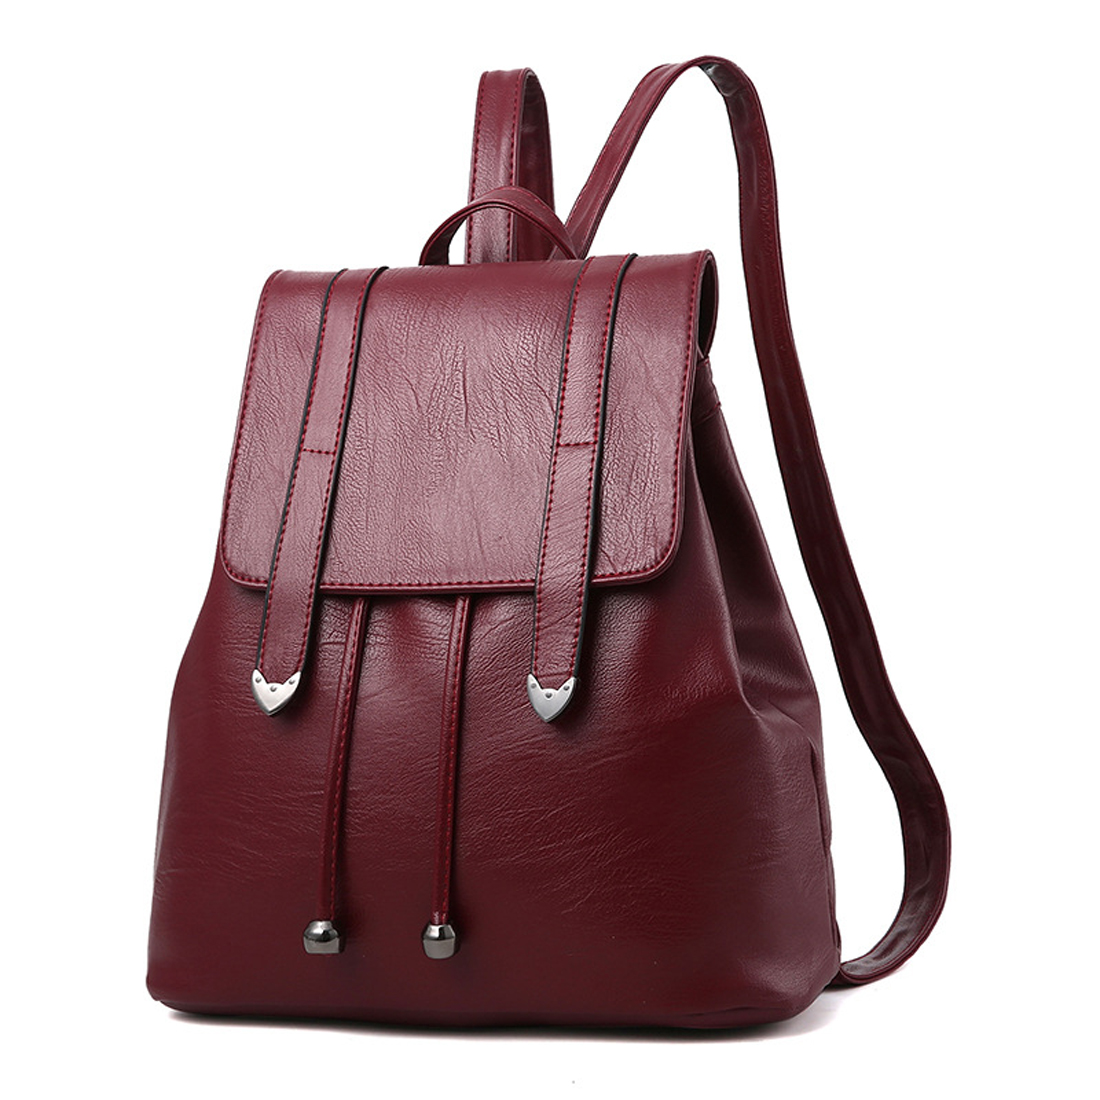 SFG HOUSE PU Leather Backpack Fashion Women 2017 Travel Bags Girls Students School Bags Ladies Shoulder